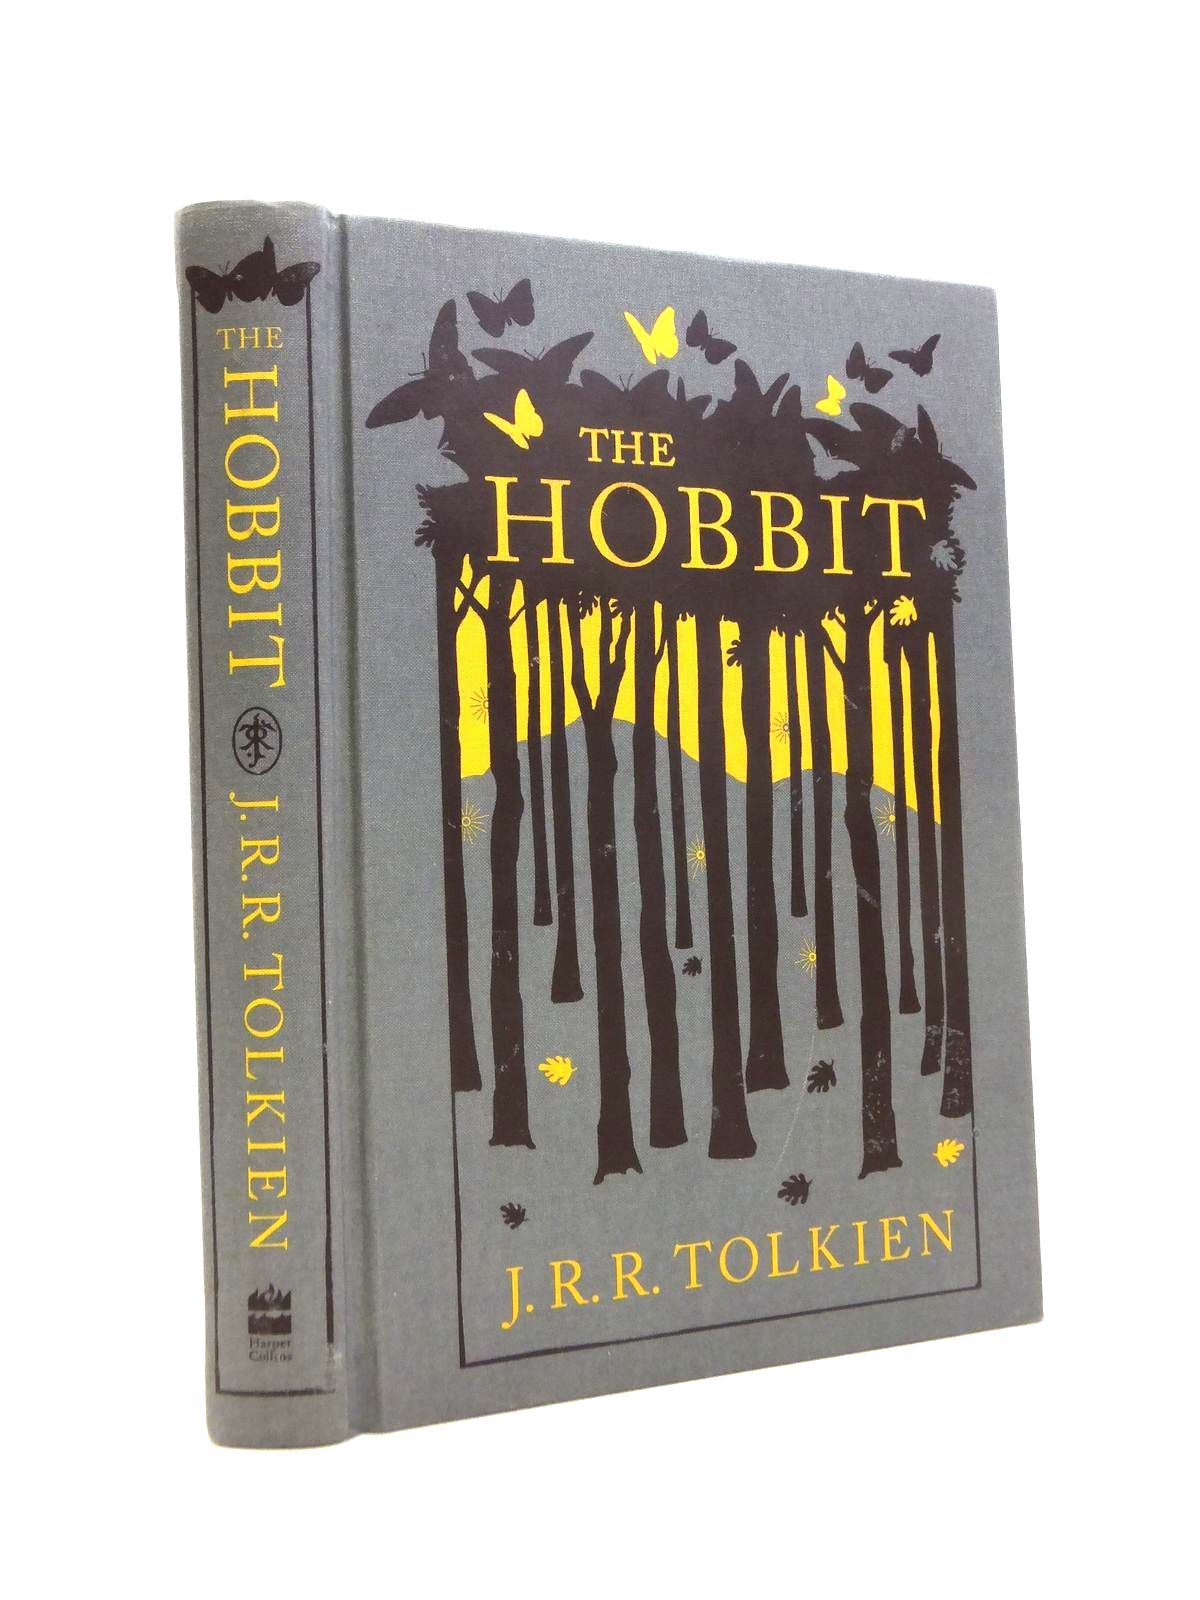 Photo of THE HOBBIT OR THERE AND BACK AGAIN written by Tolkien, J.R.R. illustrated by Tolkien, J.R.R. published by Harper Collins Publishers Ltd (STOCK CODE: 1208550)  for sale by Stella & Rose's Books